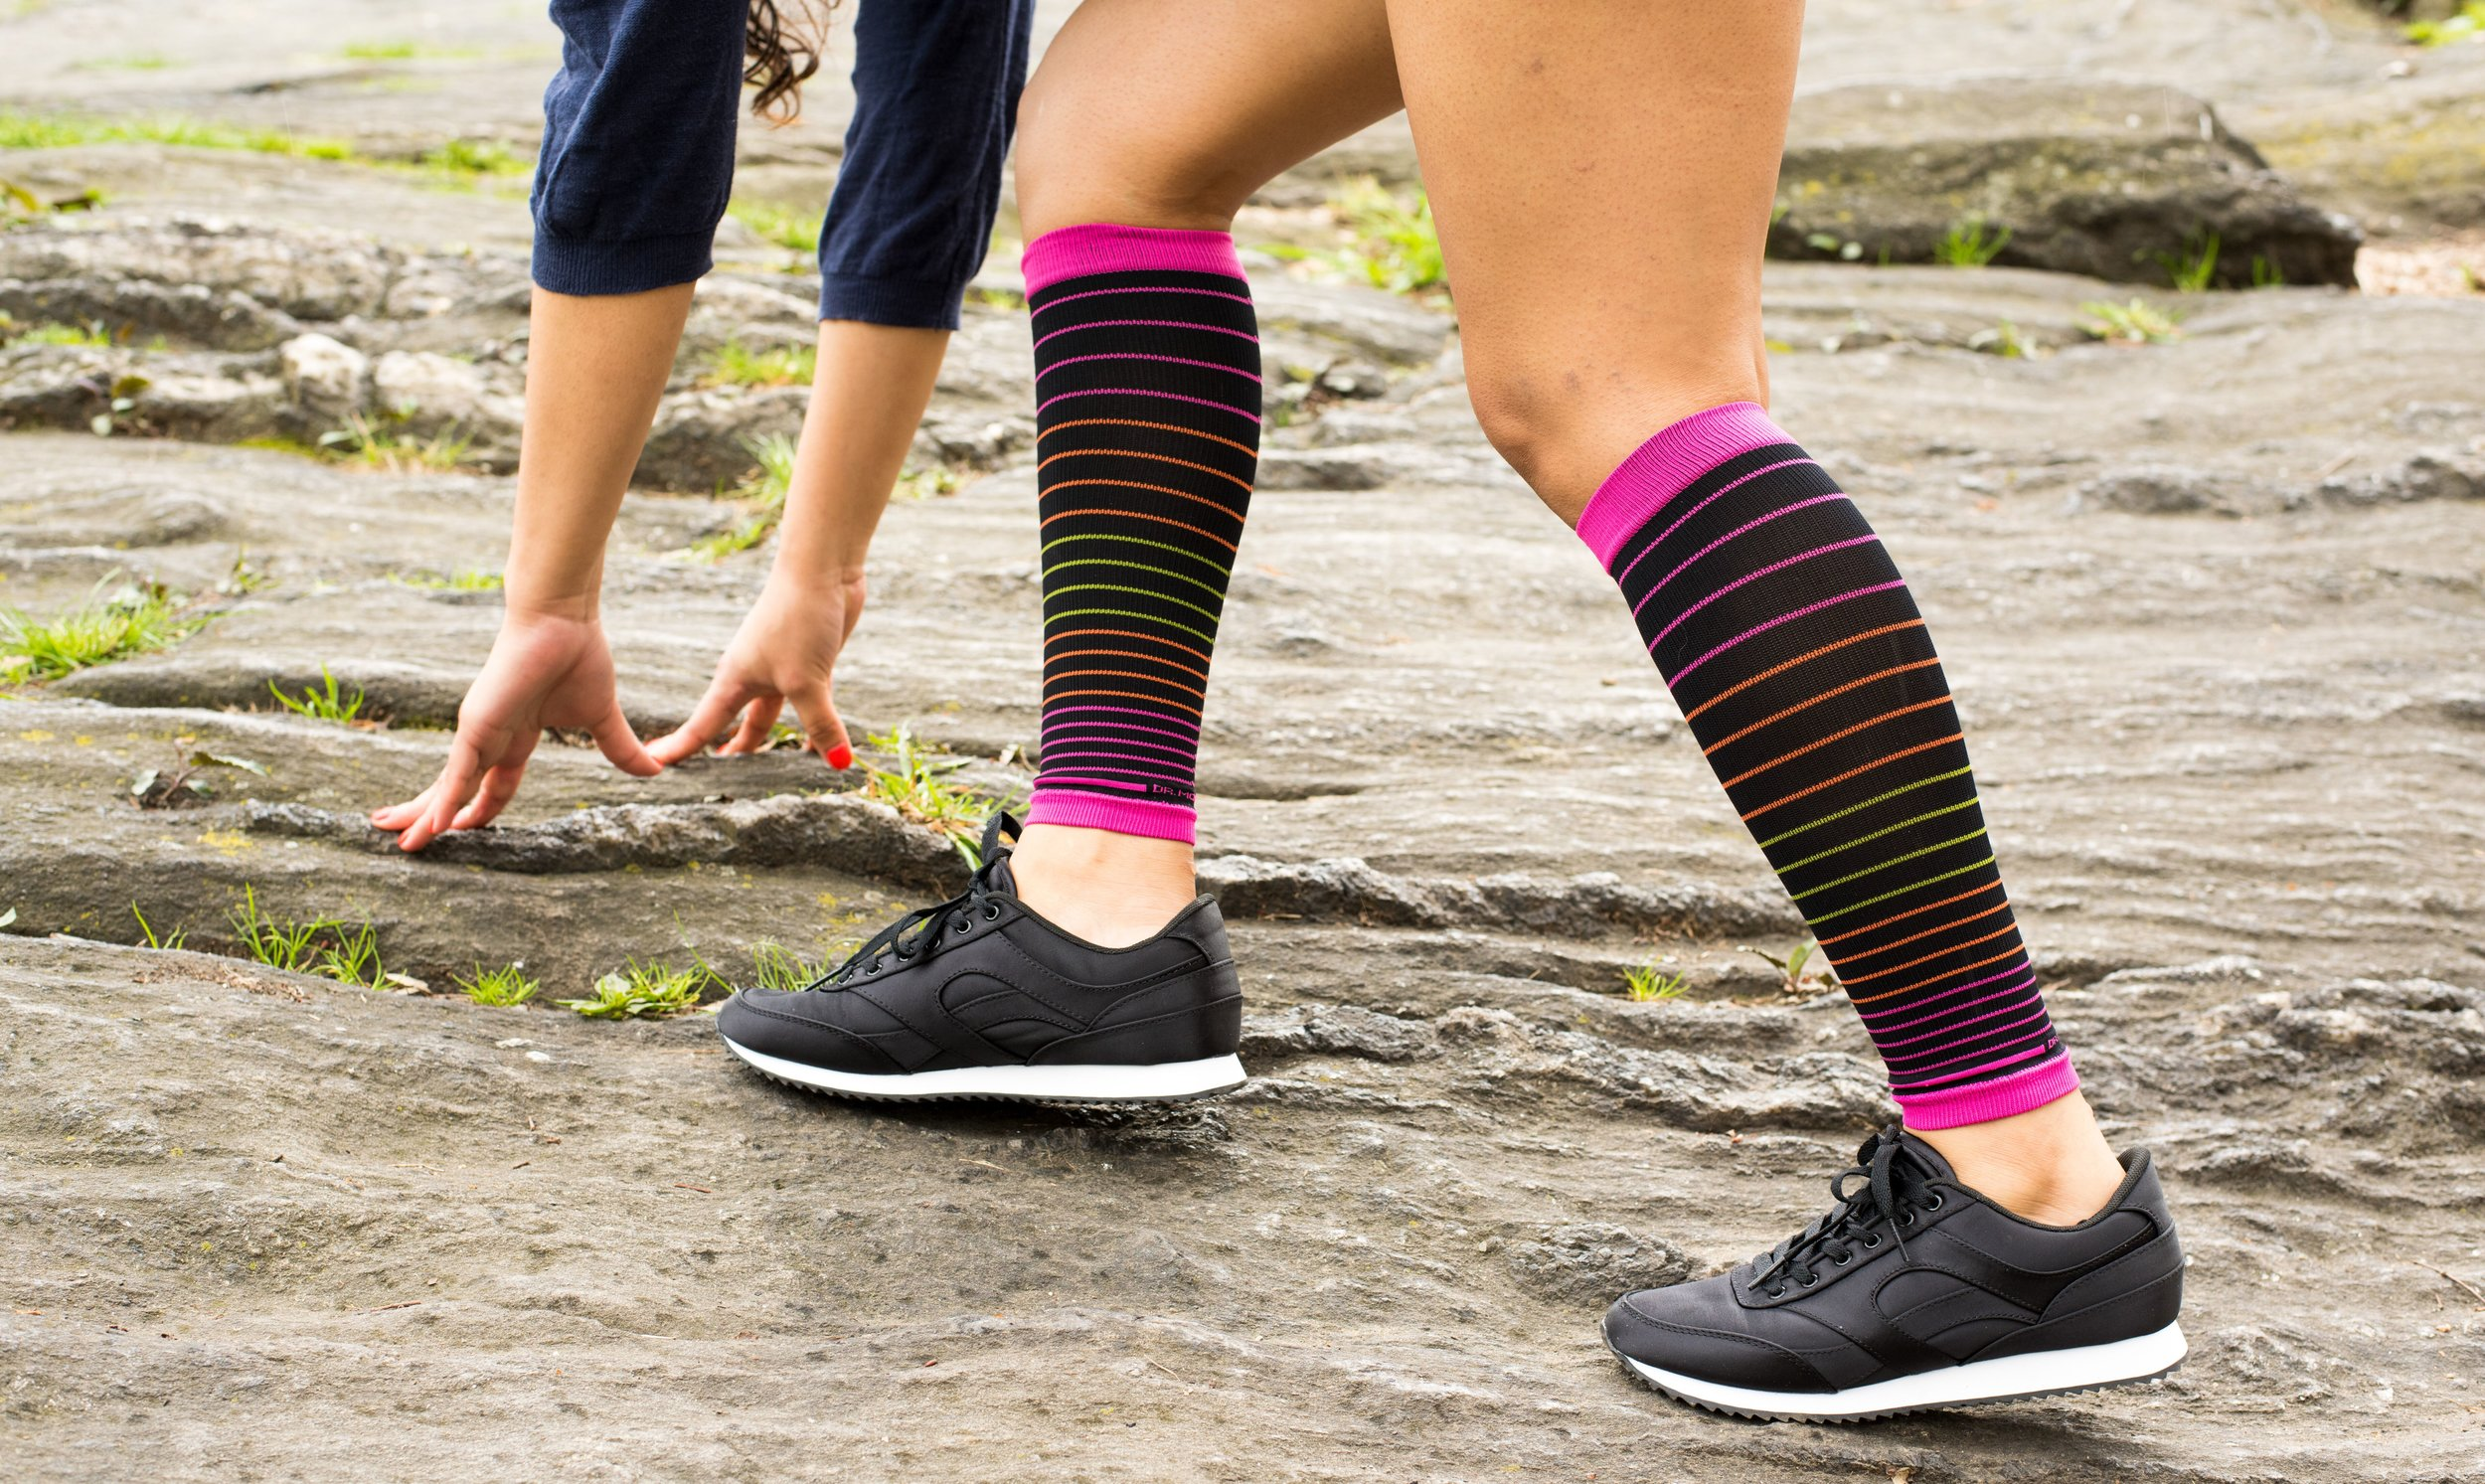 Benefits of Compression Socks for Running